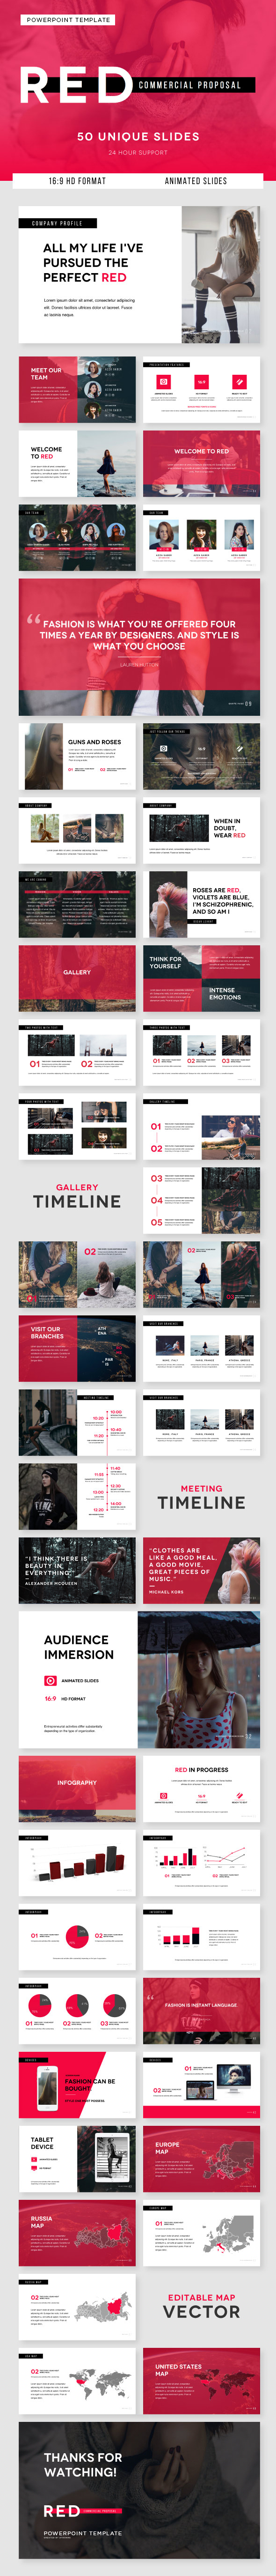 RED Commercial Proposal - PowerPoint Template - Business PowerPoint Templates